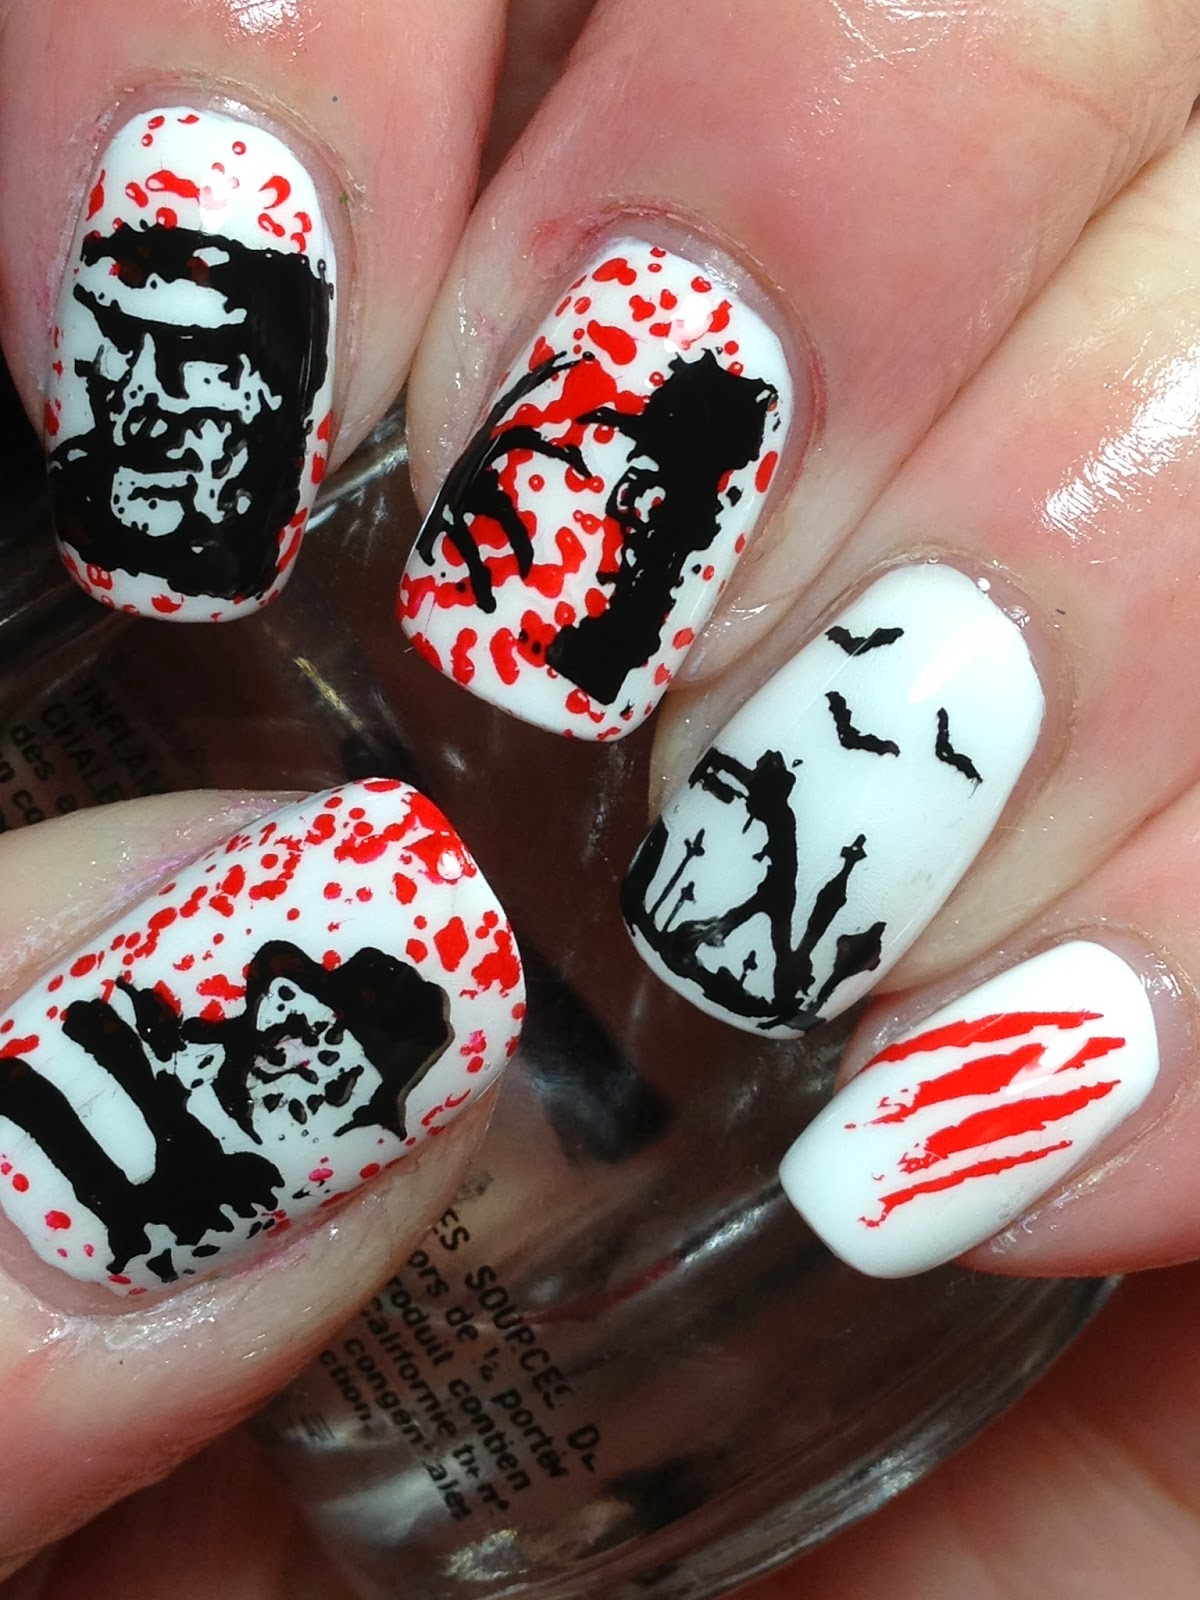 Canadian Nail Fanatic Freddy Krueger And Vote Over At Harlow Co